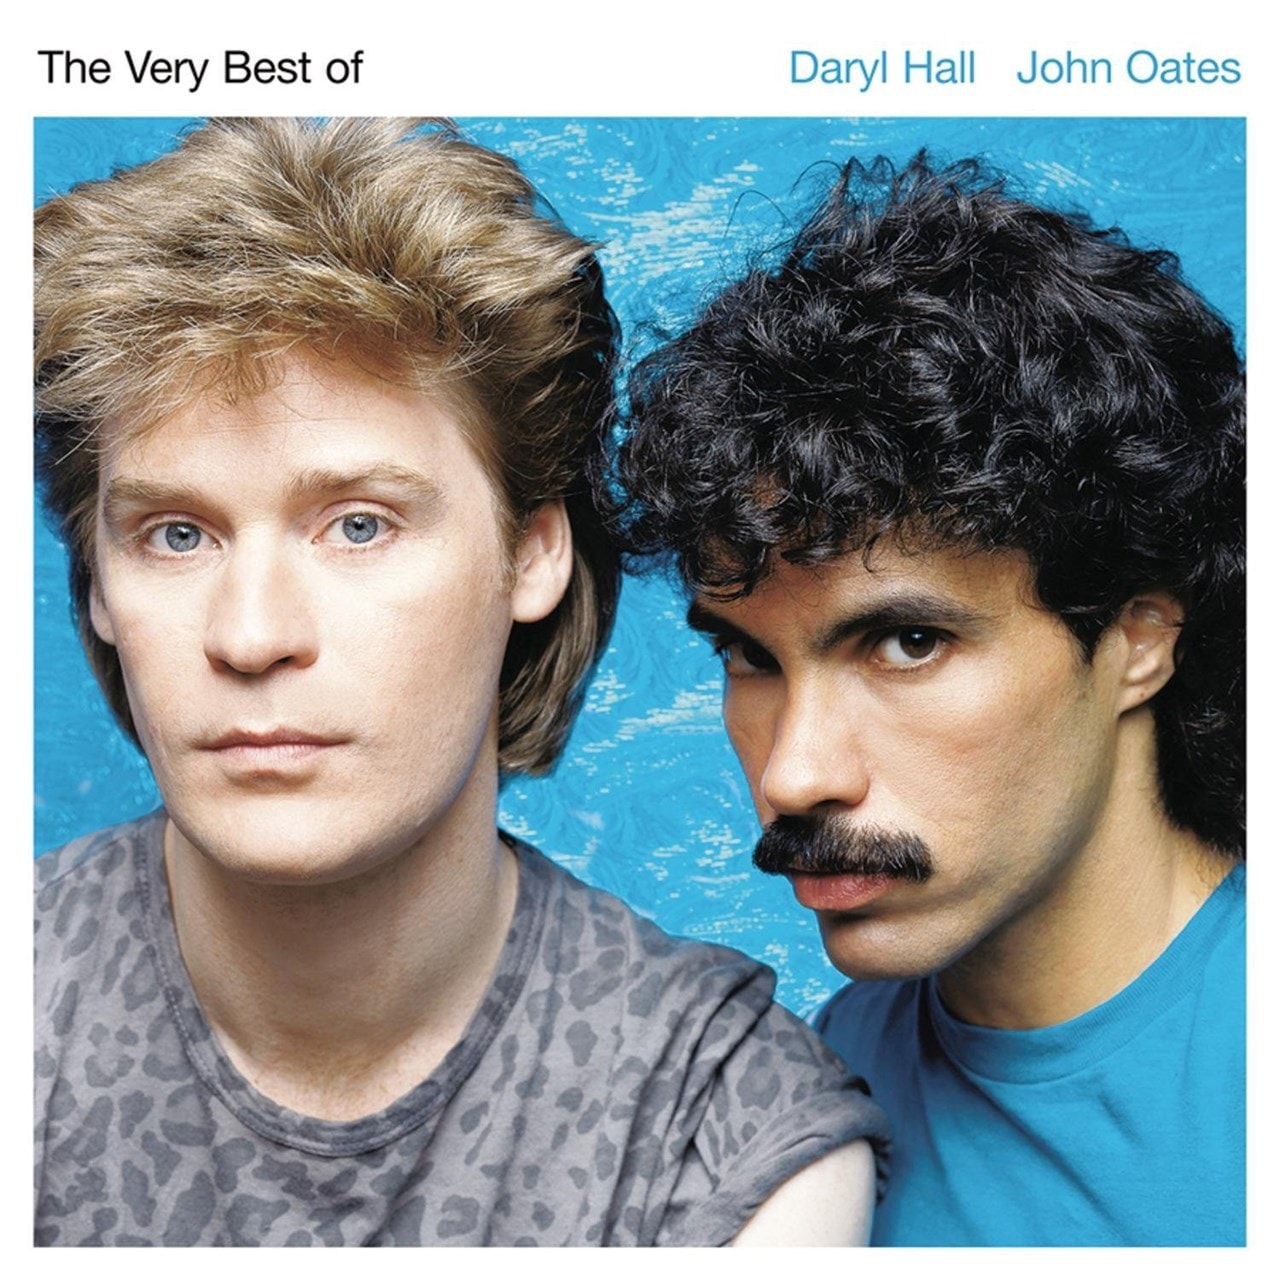 The Very Best of Daryl Hall & John Oates - 1